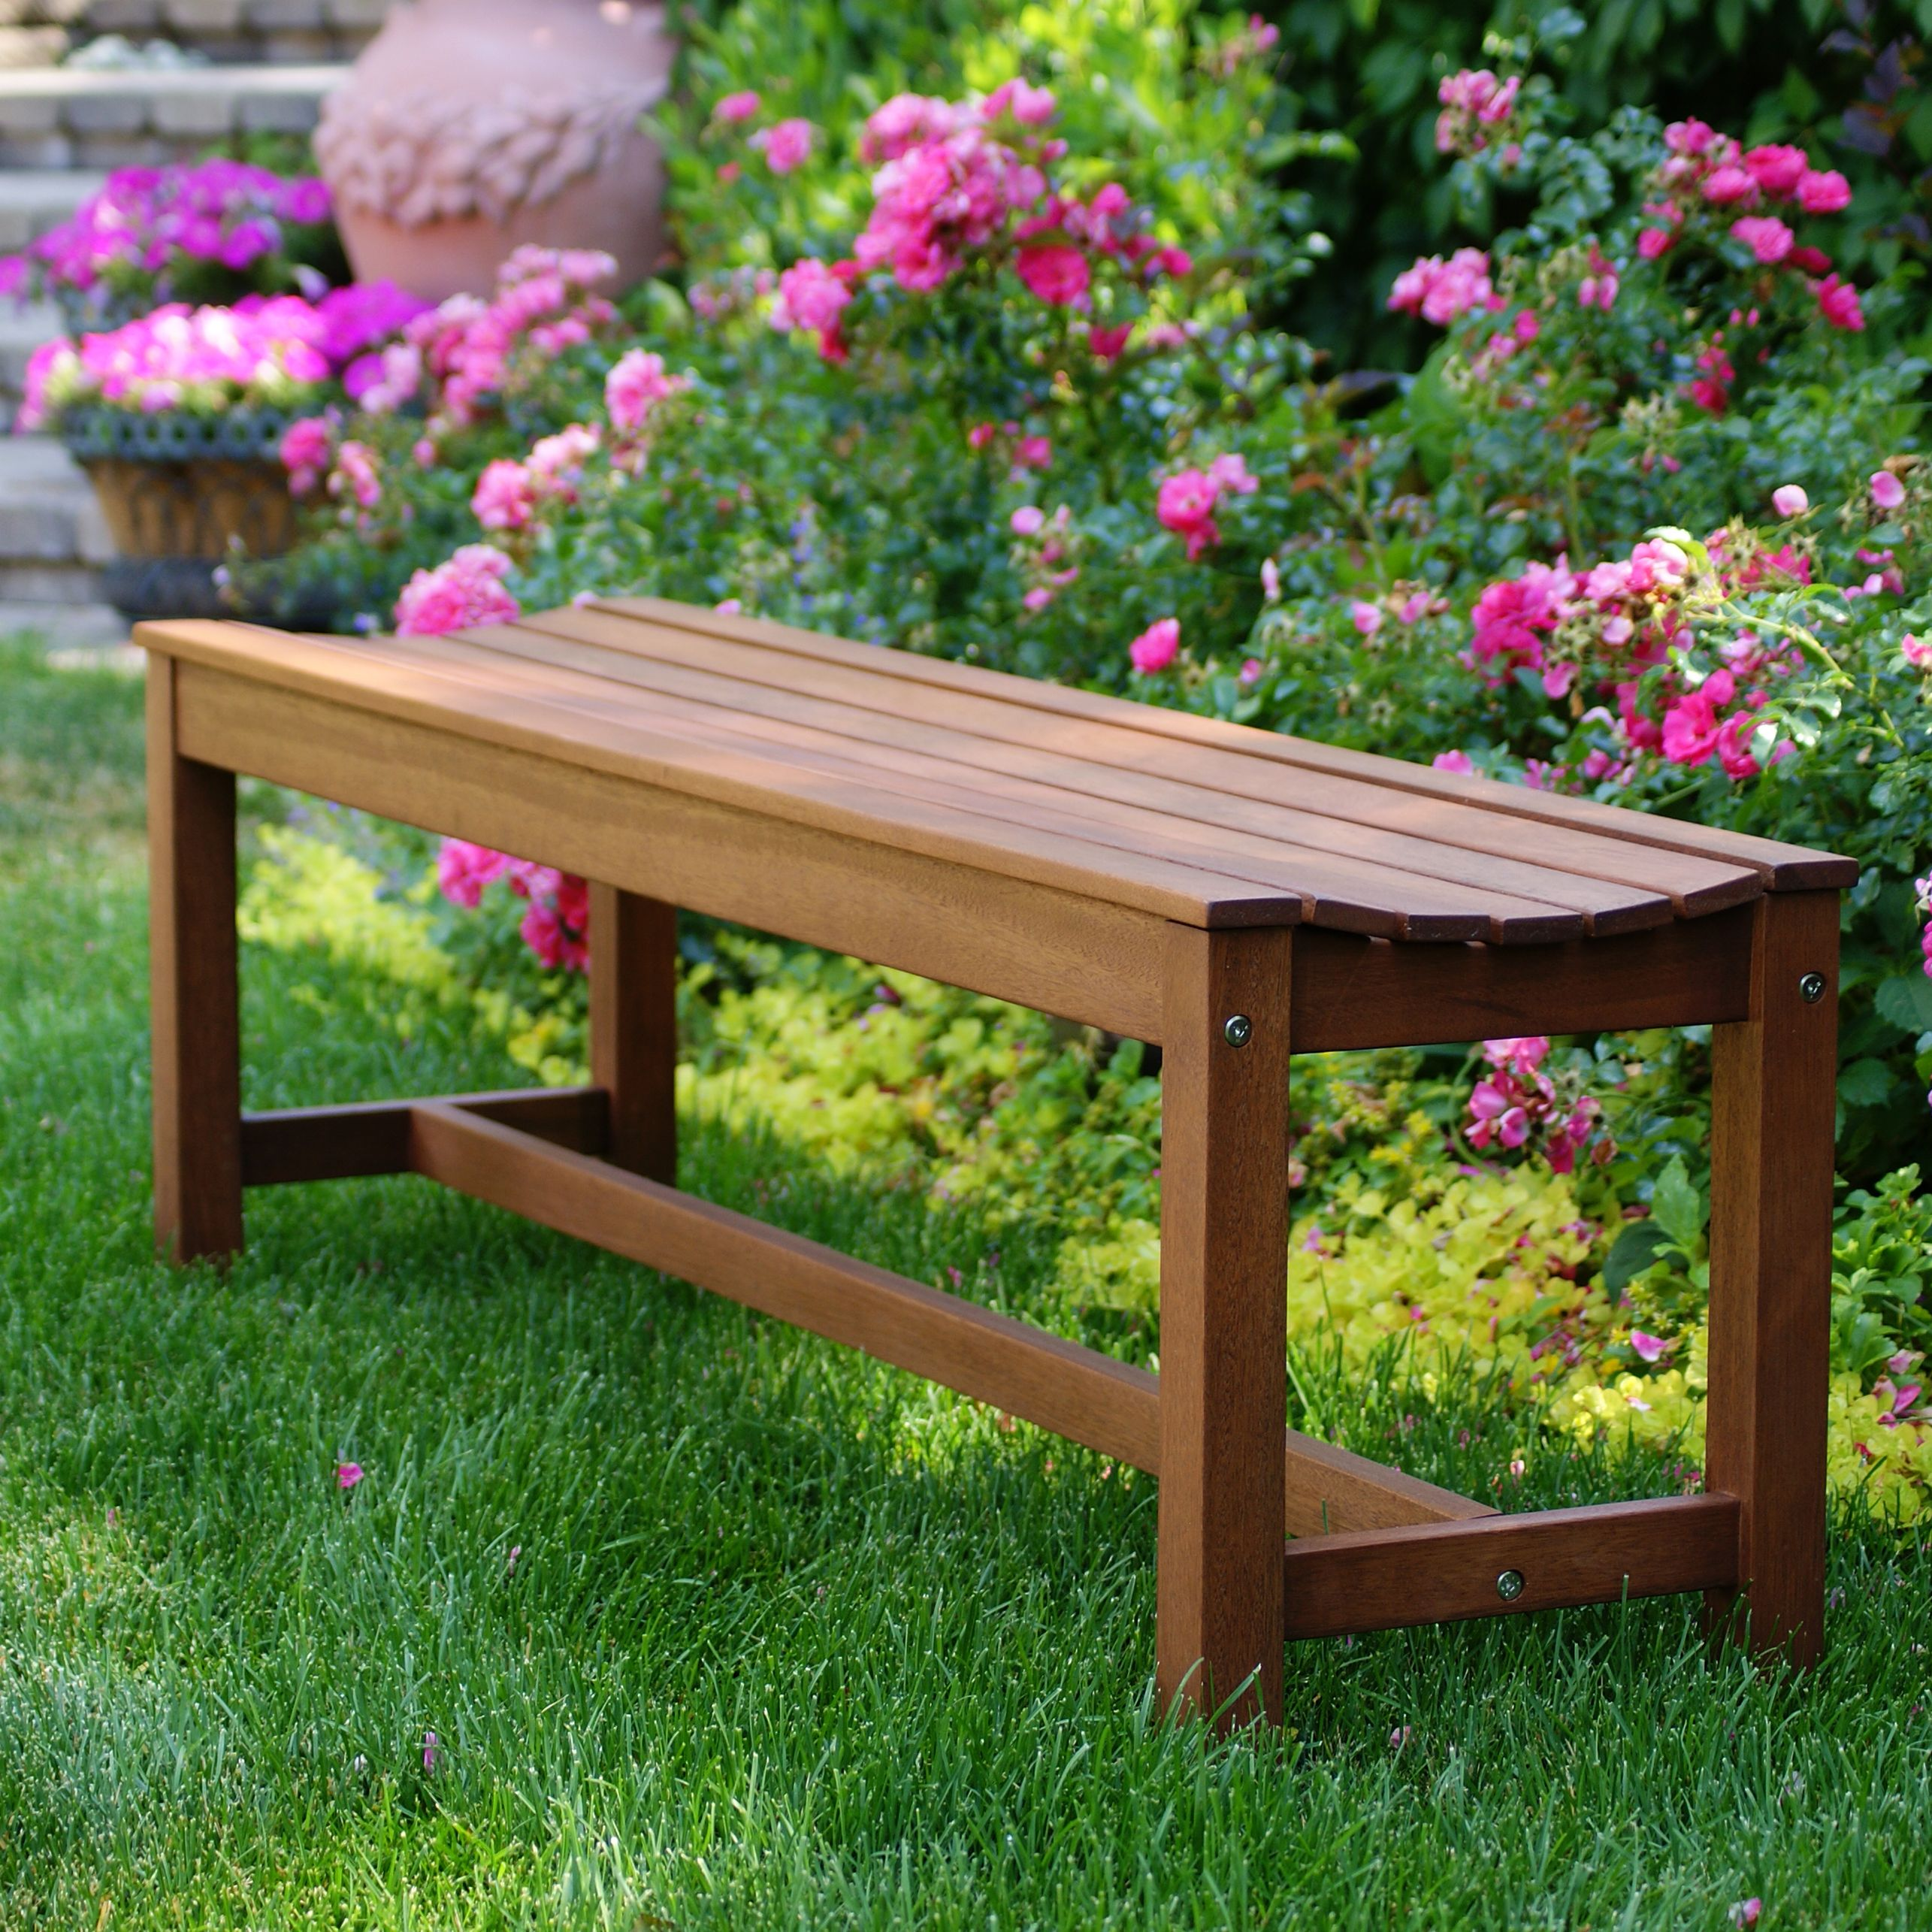 Outdoor Interiors 60404 Outdoor Backless Bench Outdoor Backless BenchCurvy  ComfortFinish That Sustains The Outdoors For Many YearsOil With Linseed Oil